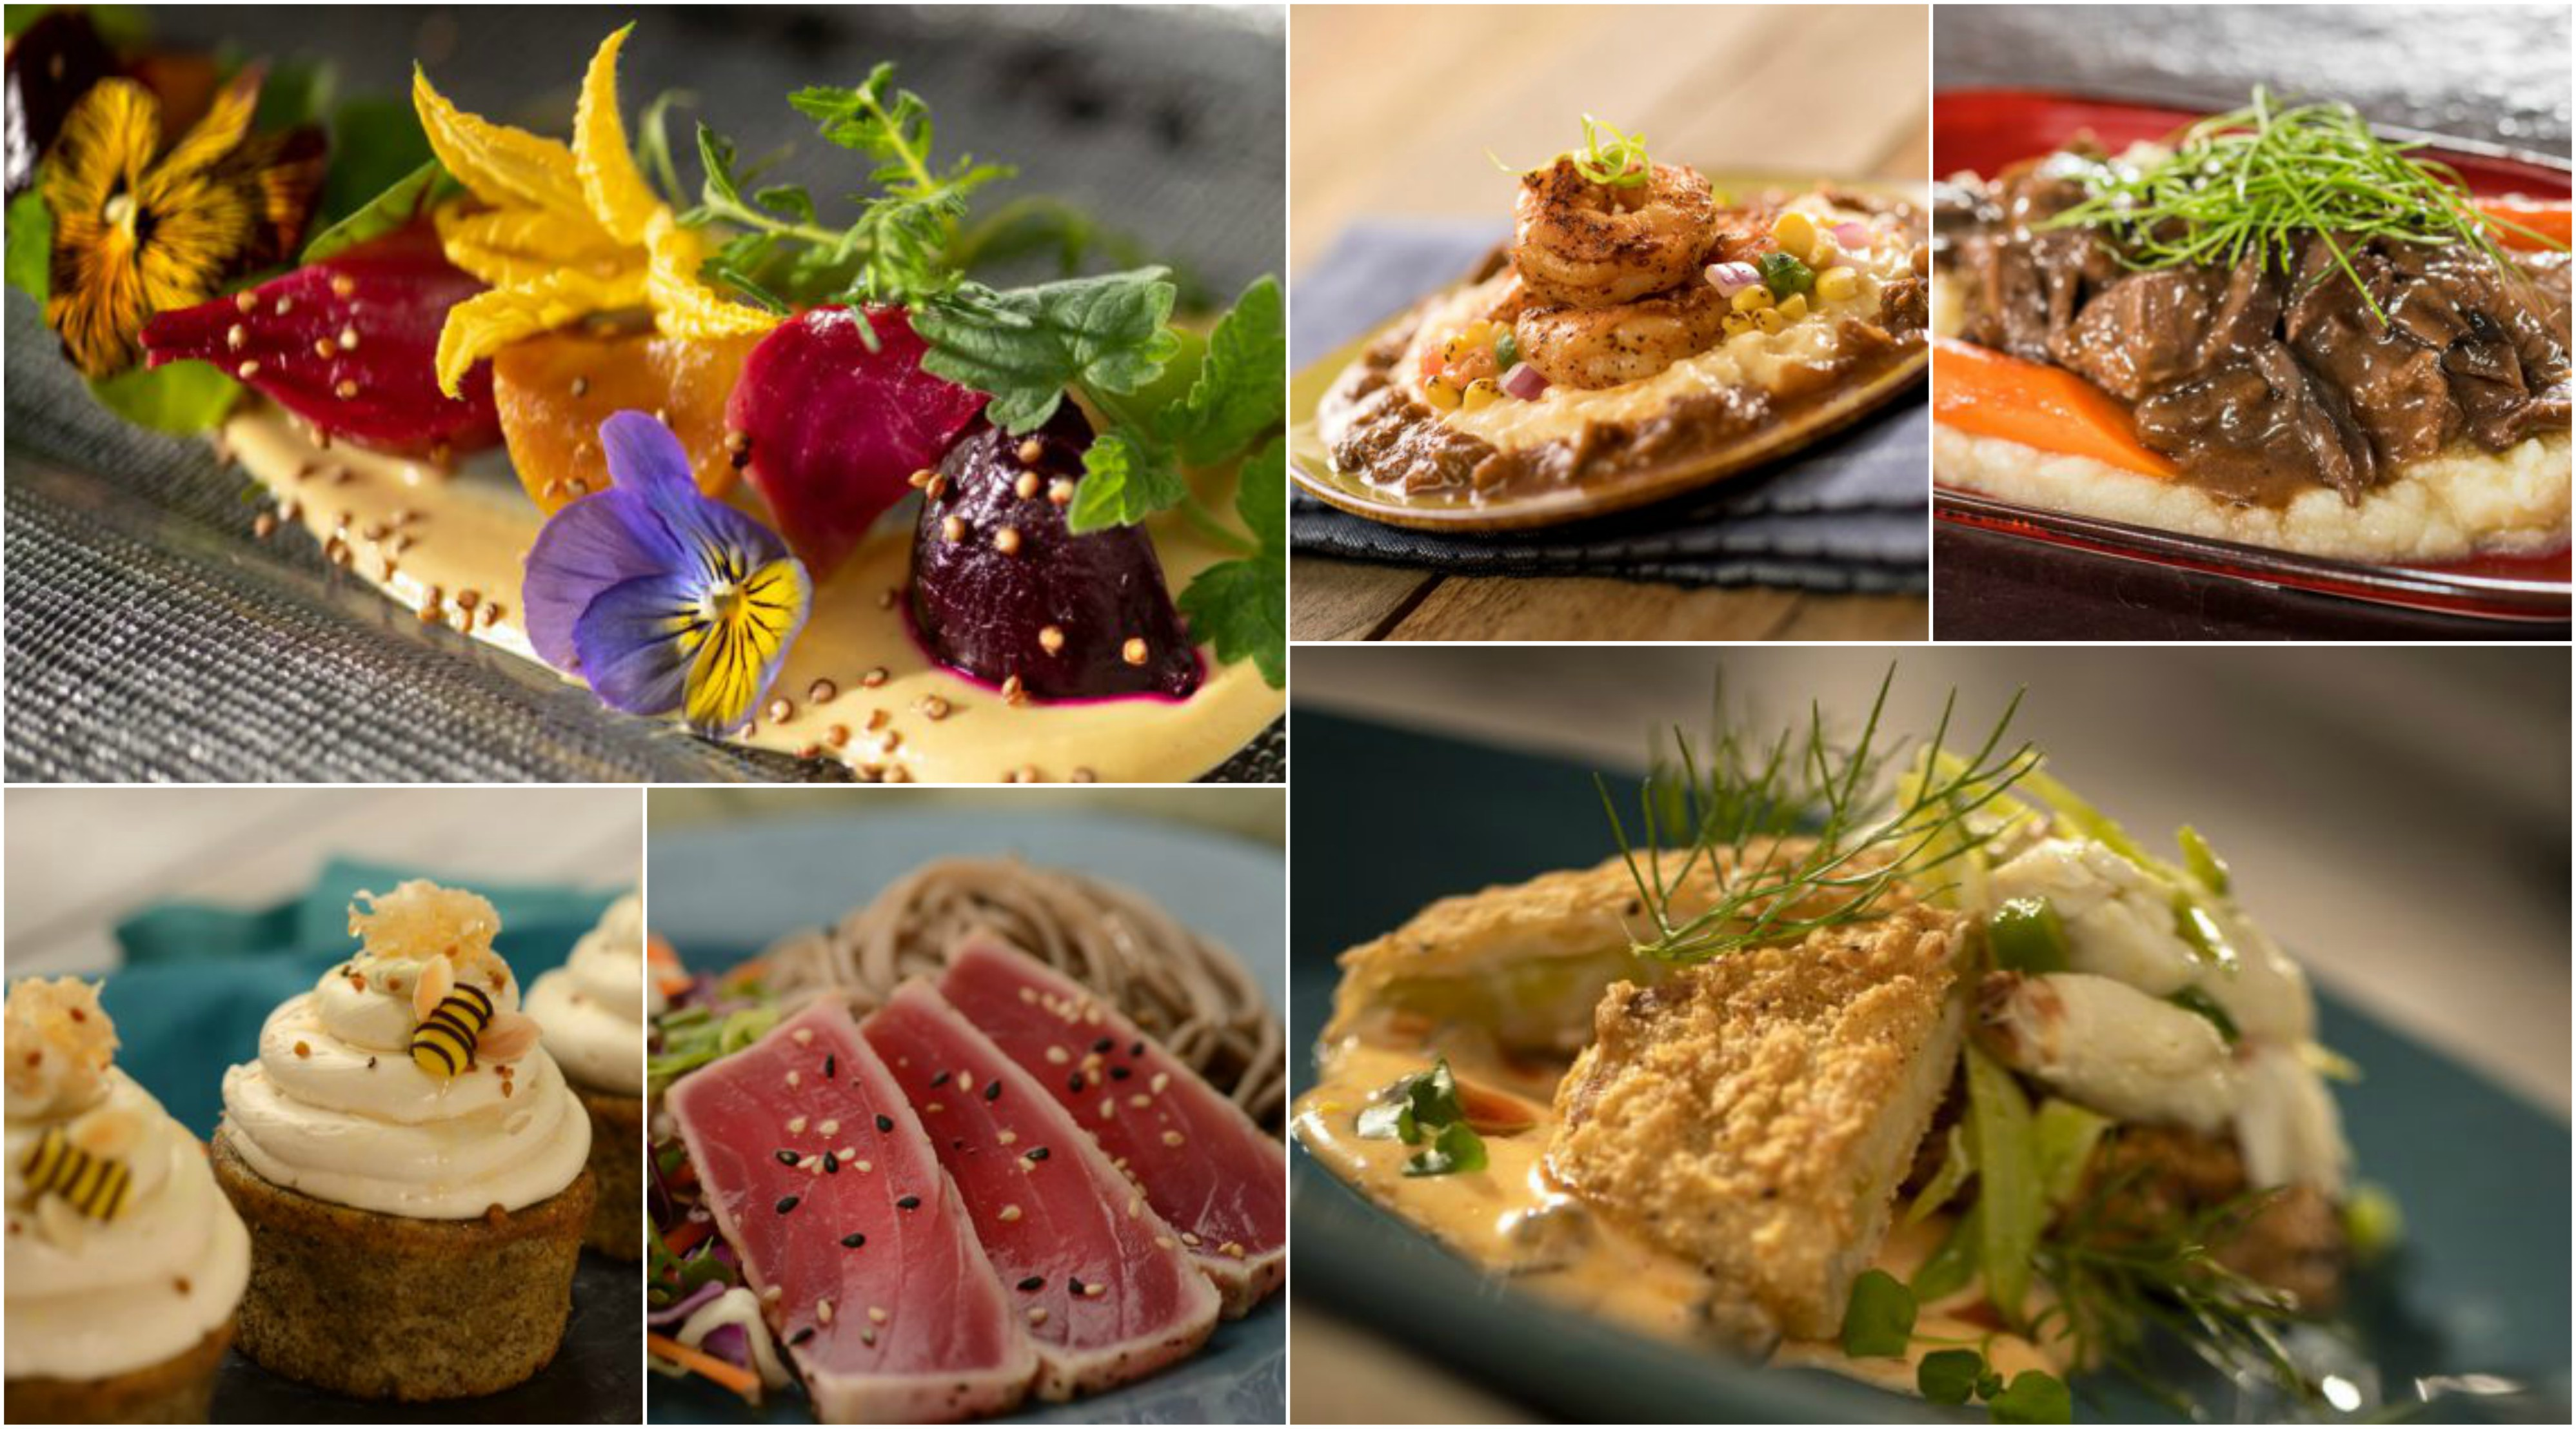 foodie guide to the 2019 epcot international flower & garden